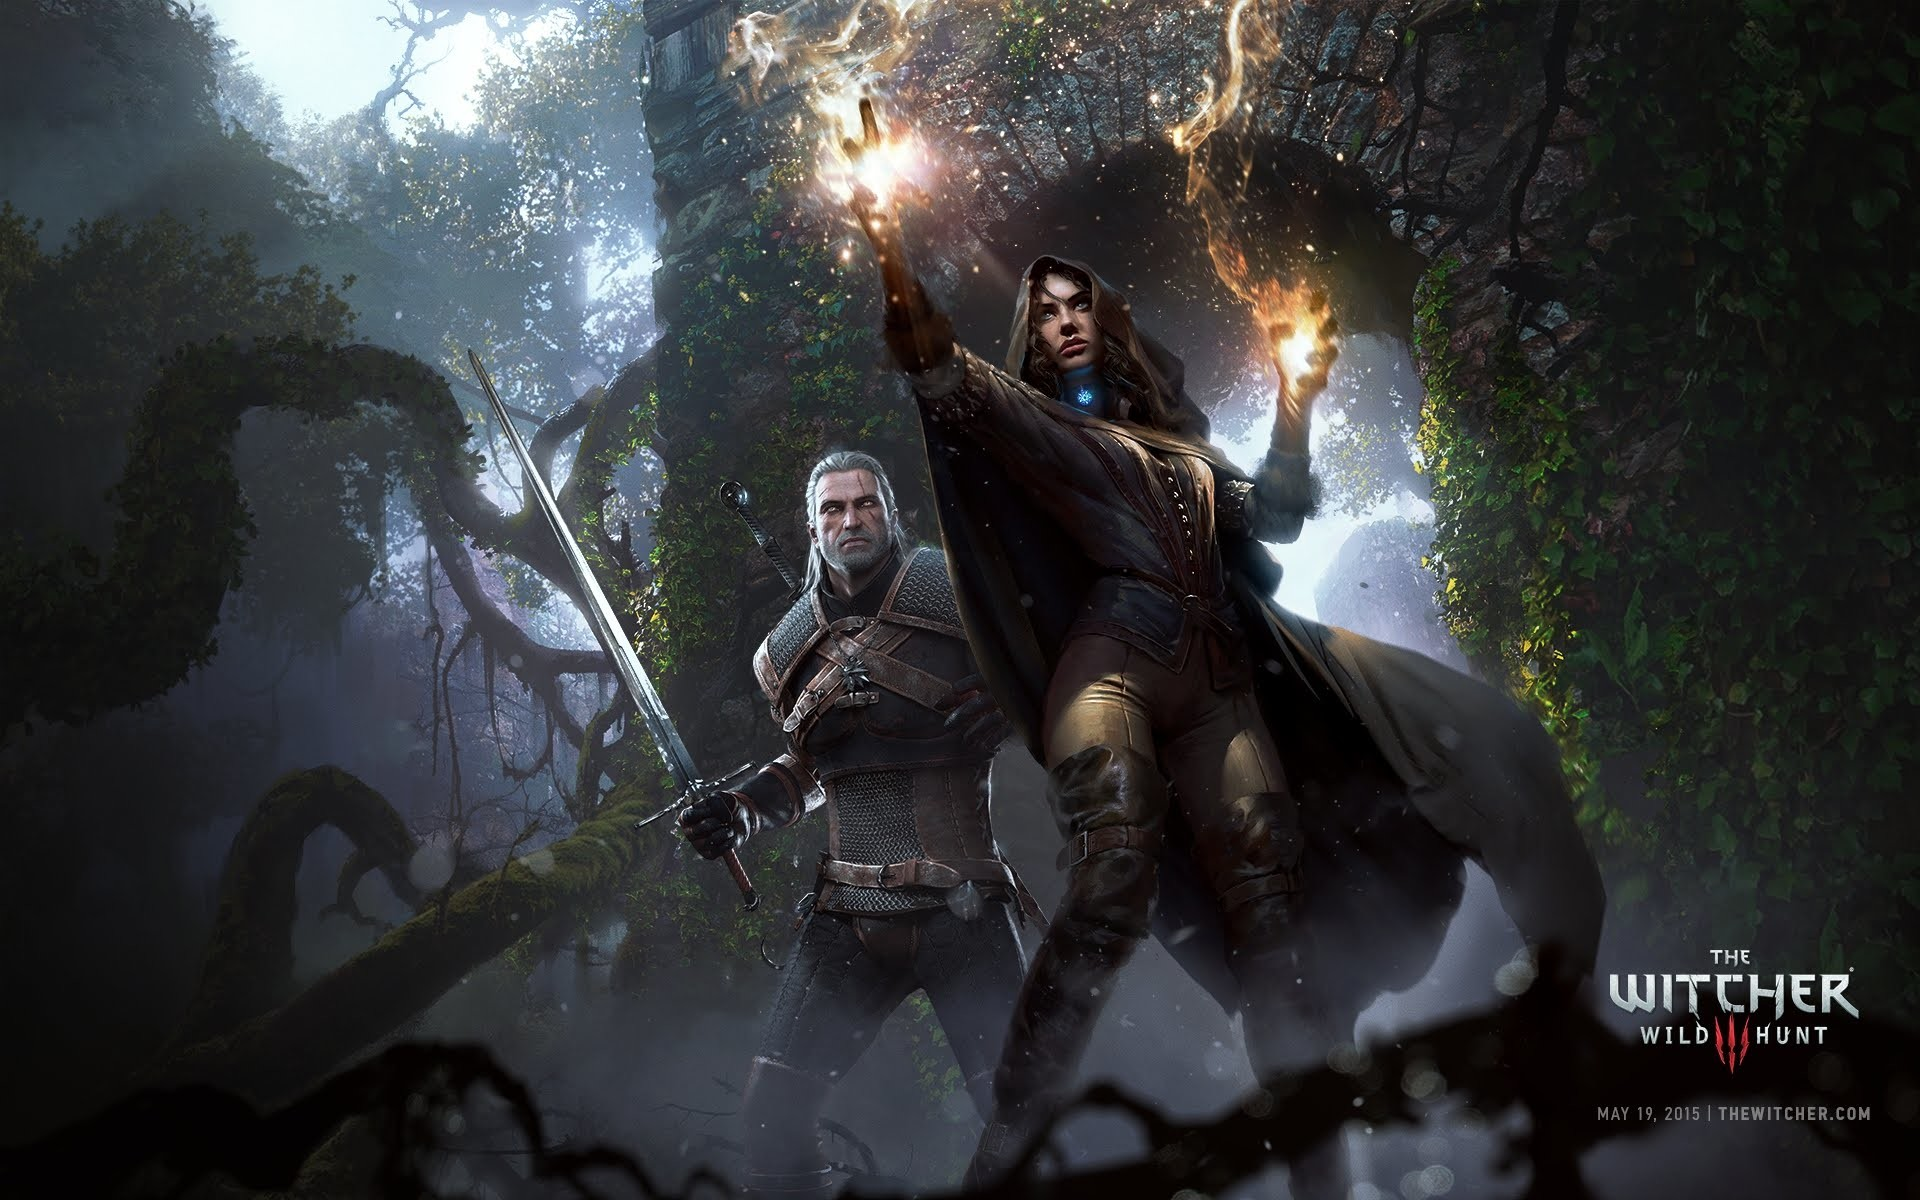 The Witcher 3 Ultra Settings @ 1080P Gameplay GTX 780 SLI. Nvdia HairWorks  Enable/Disable.